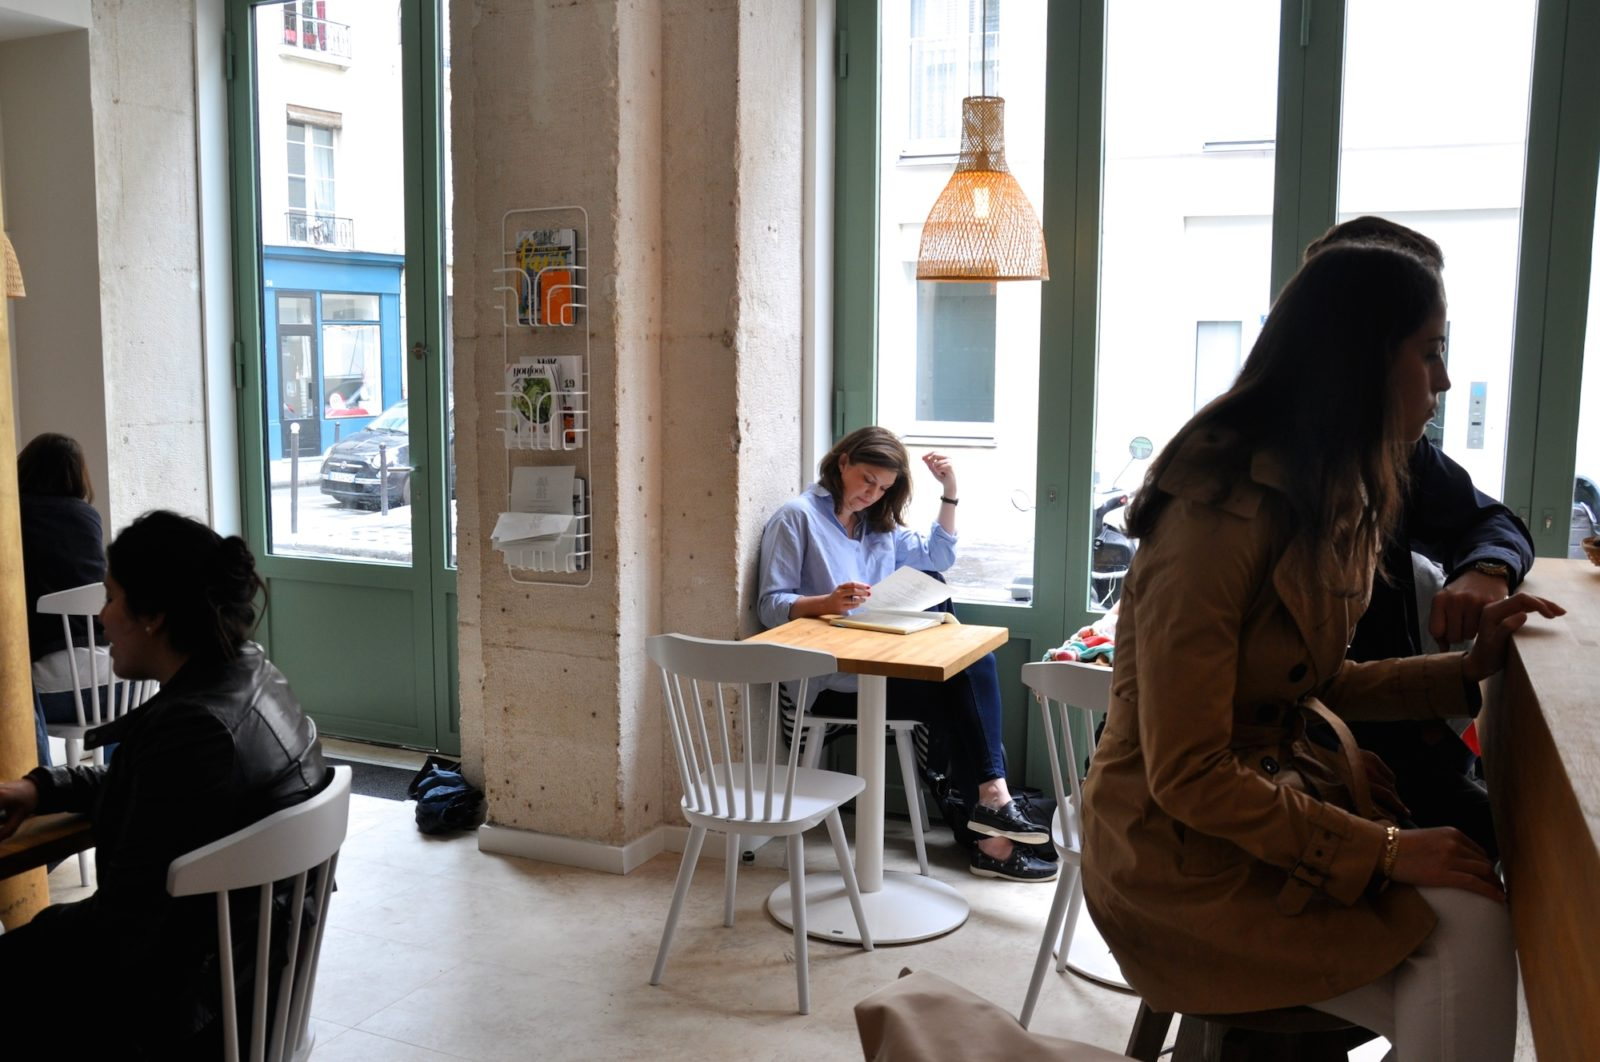 HiP Paris Blog checks out Cafe Mericourt, Cafe Oberkampf's brother cafe.